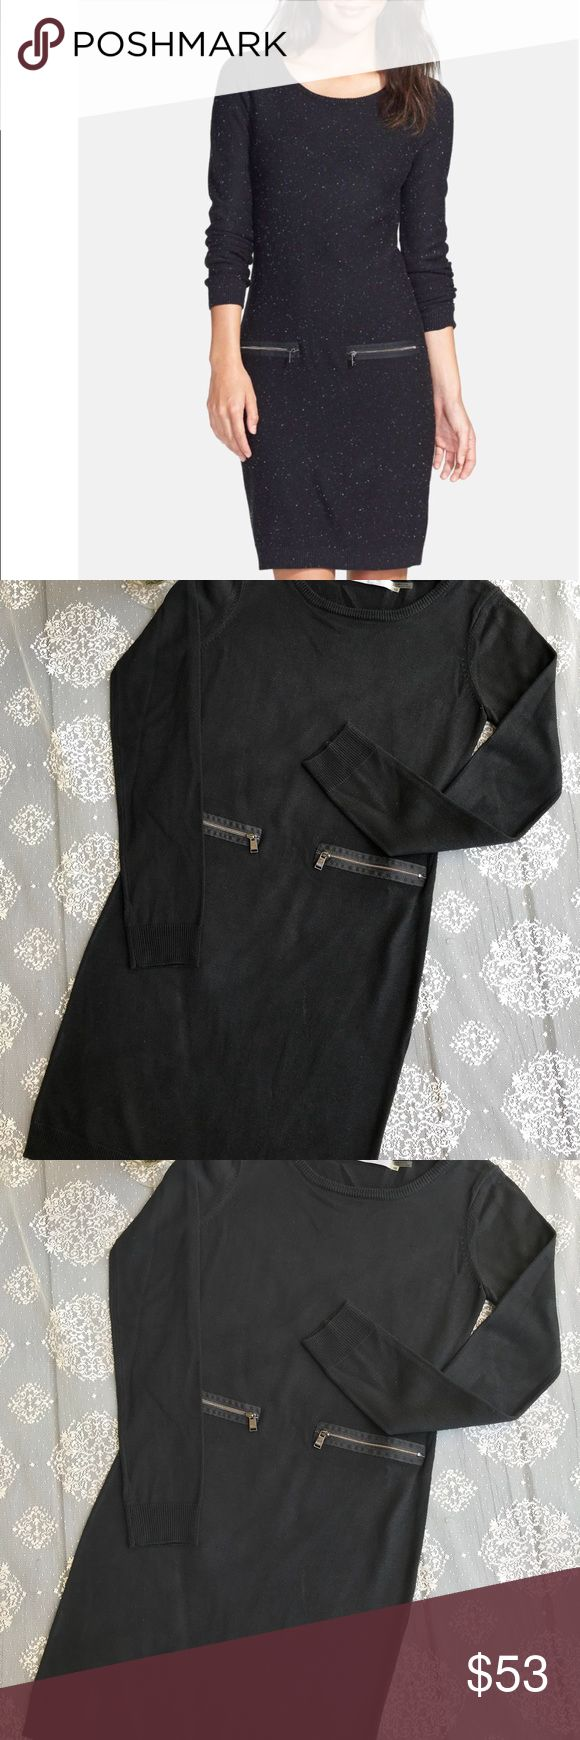 "NWOT Marc New York / Andrew Marc from Nordstrom Fitted long-sleeved, black color sweater dress with zipper details on the front. It's true size. 100% acrylic,  bust 16"", length 34"".  I'm accepting all reasonable offers using the offer button & Thank you. Andrew Marc Dresses Midi"